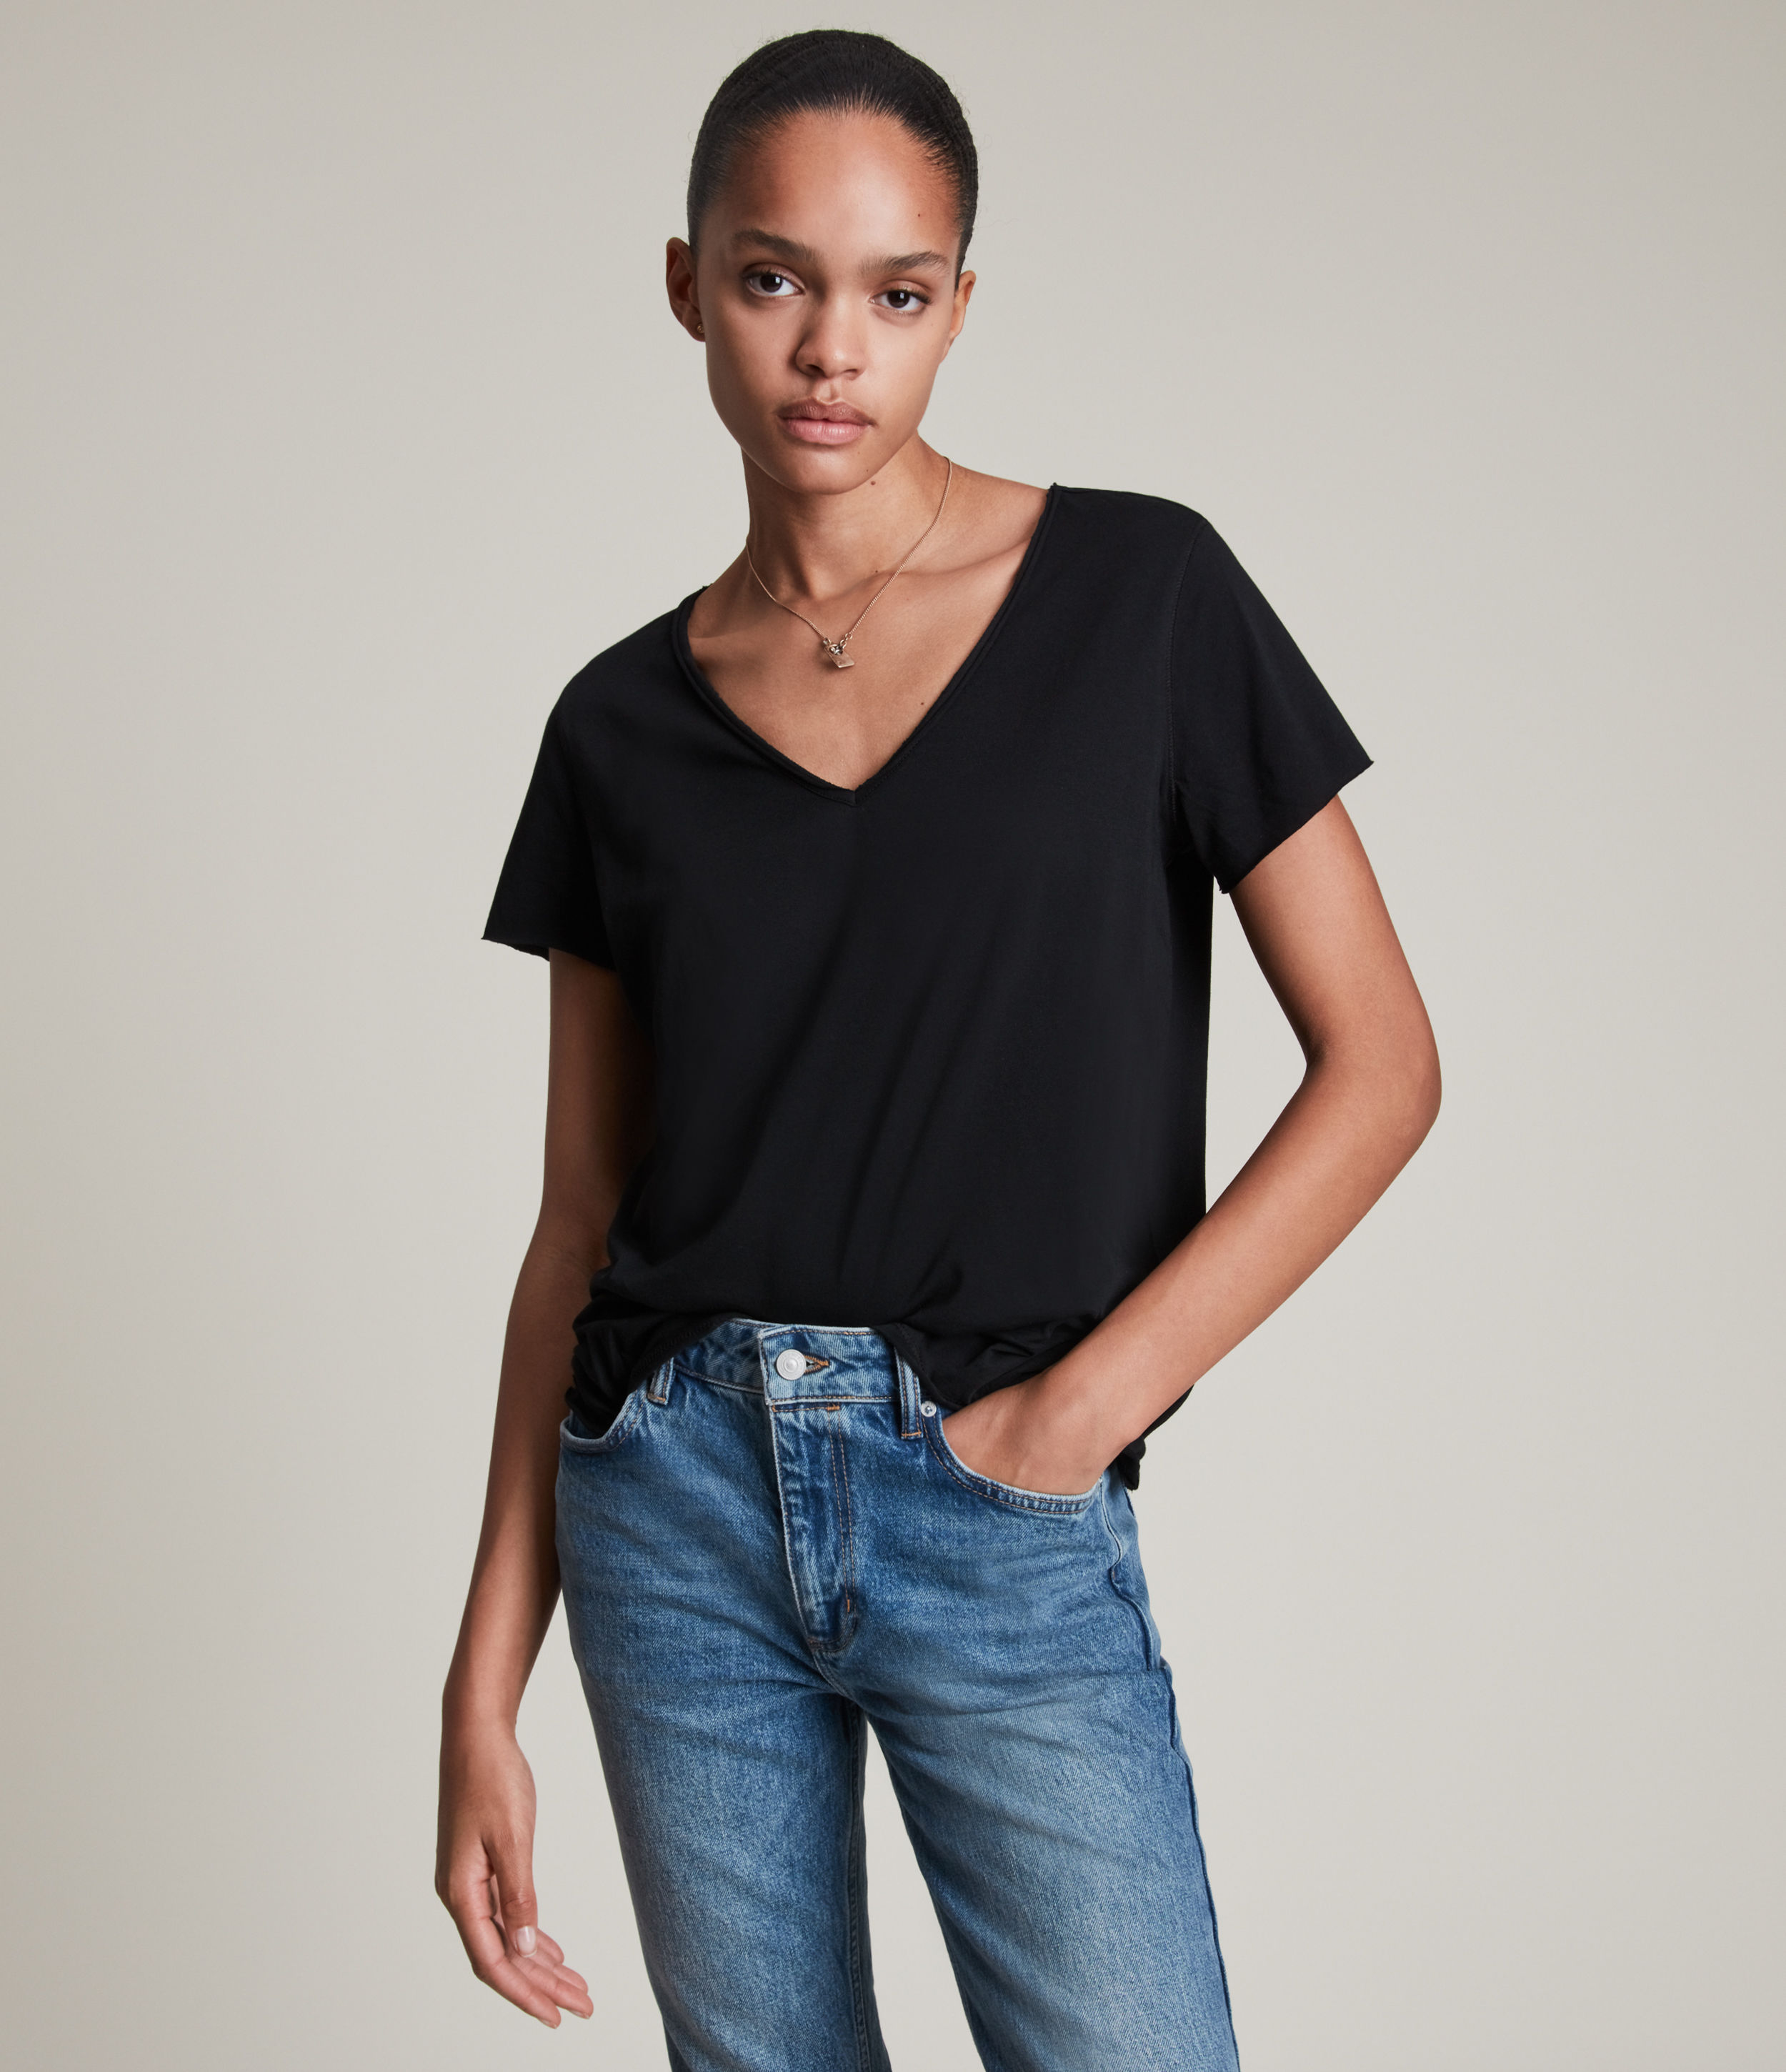 AllSaints Women's Regular Fit Cotton Emelyn Tonic Short Sleeve T-Shirt, Black, Size: XS